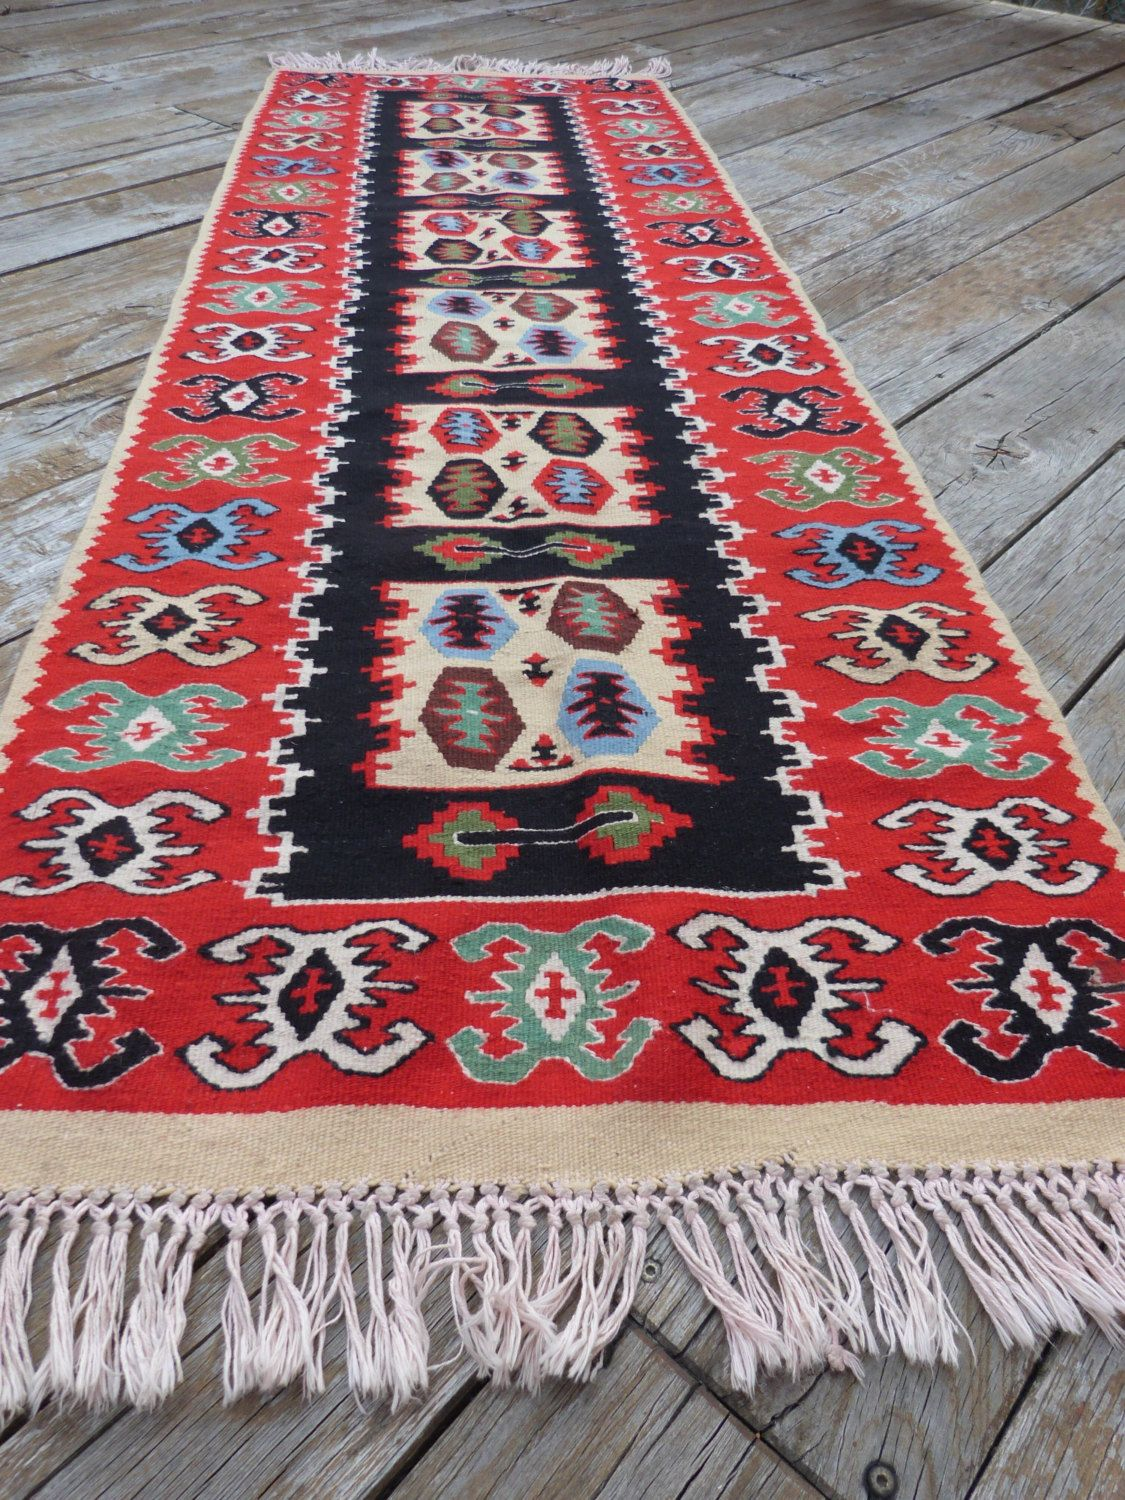 Old Hand Woven Wool Rug Handmade Carpet Carpets Traditional Romanian Farmhouse Home Decor Rag By Treasurycoffer On Etsy